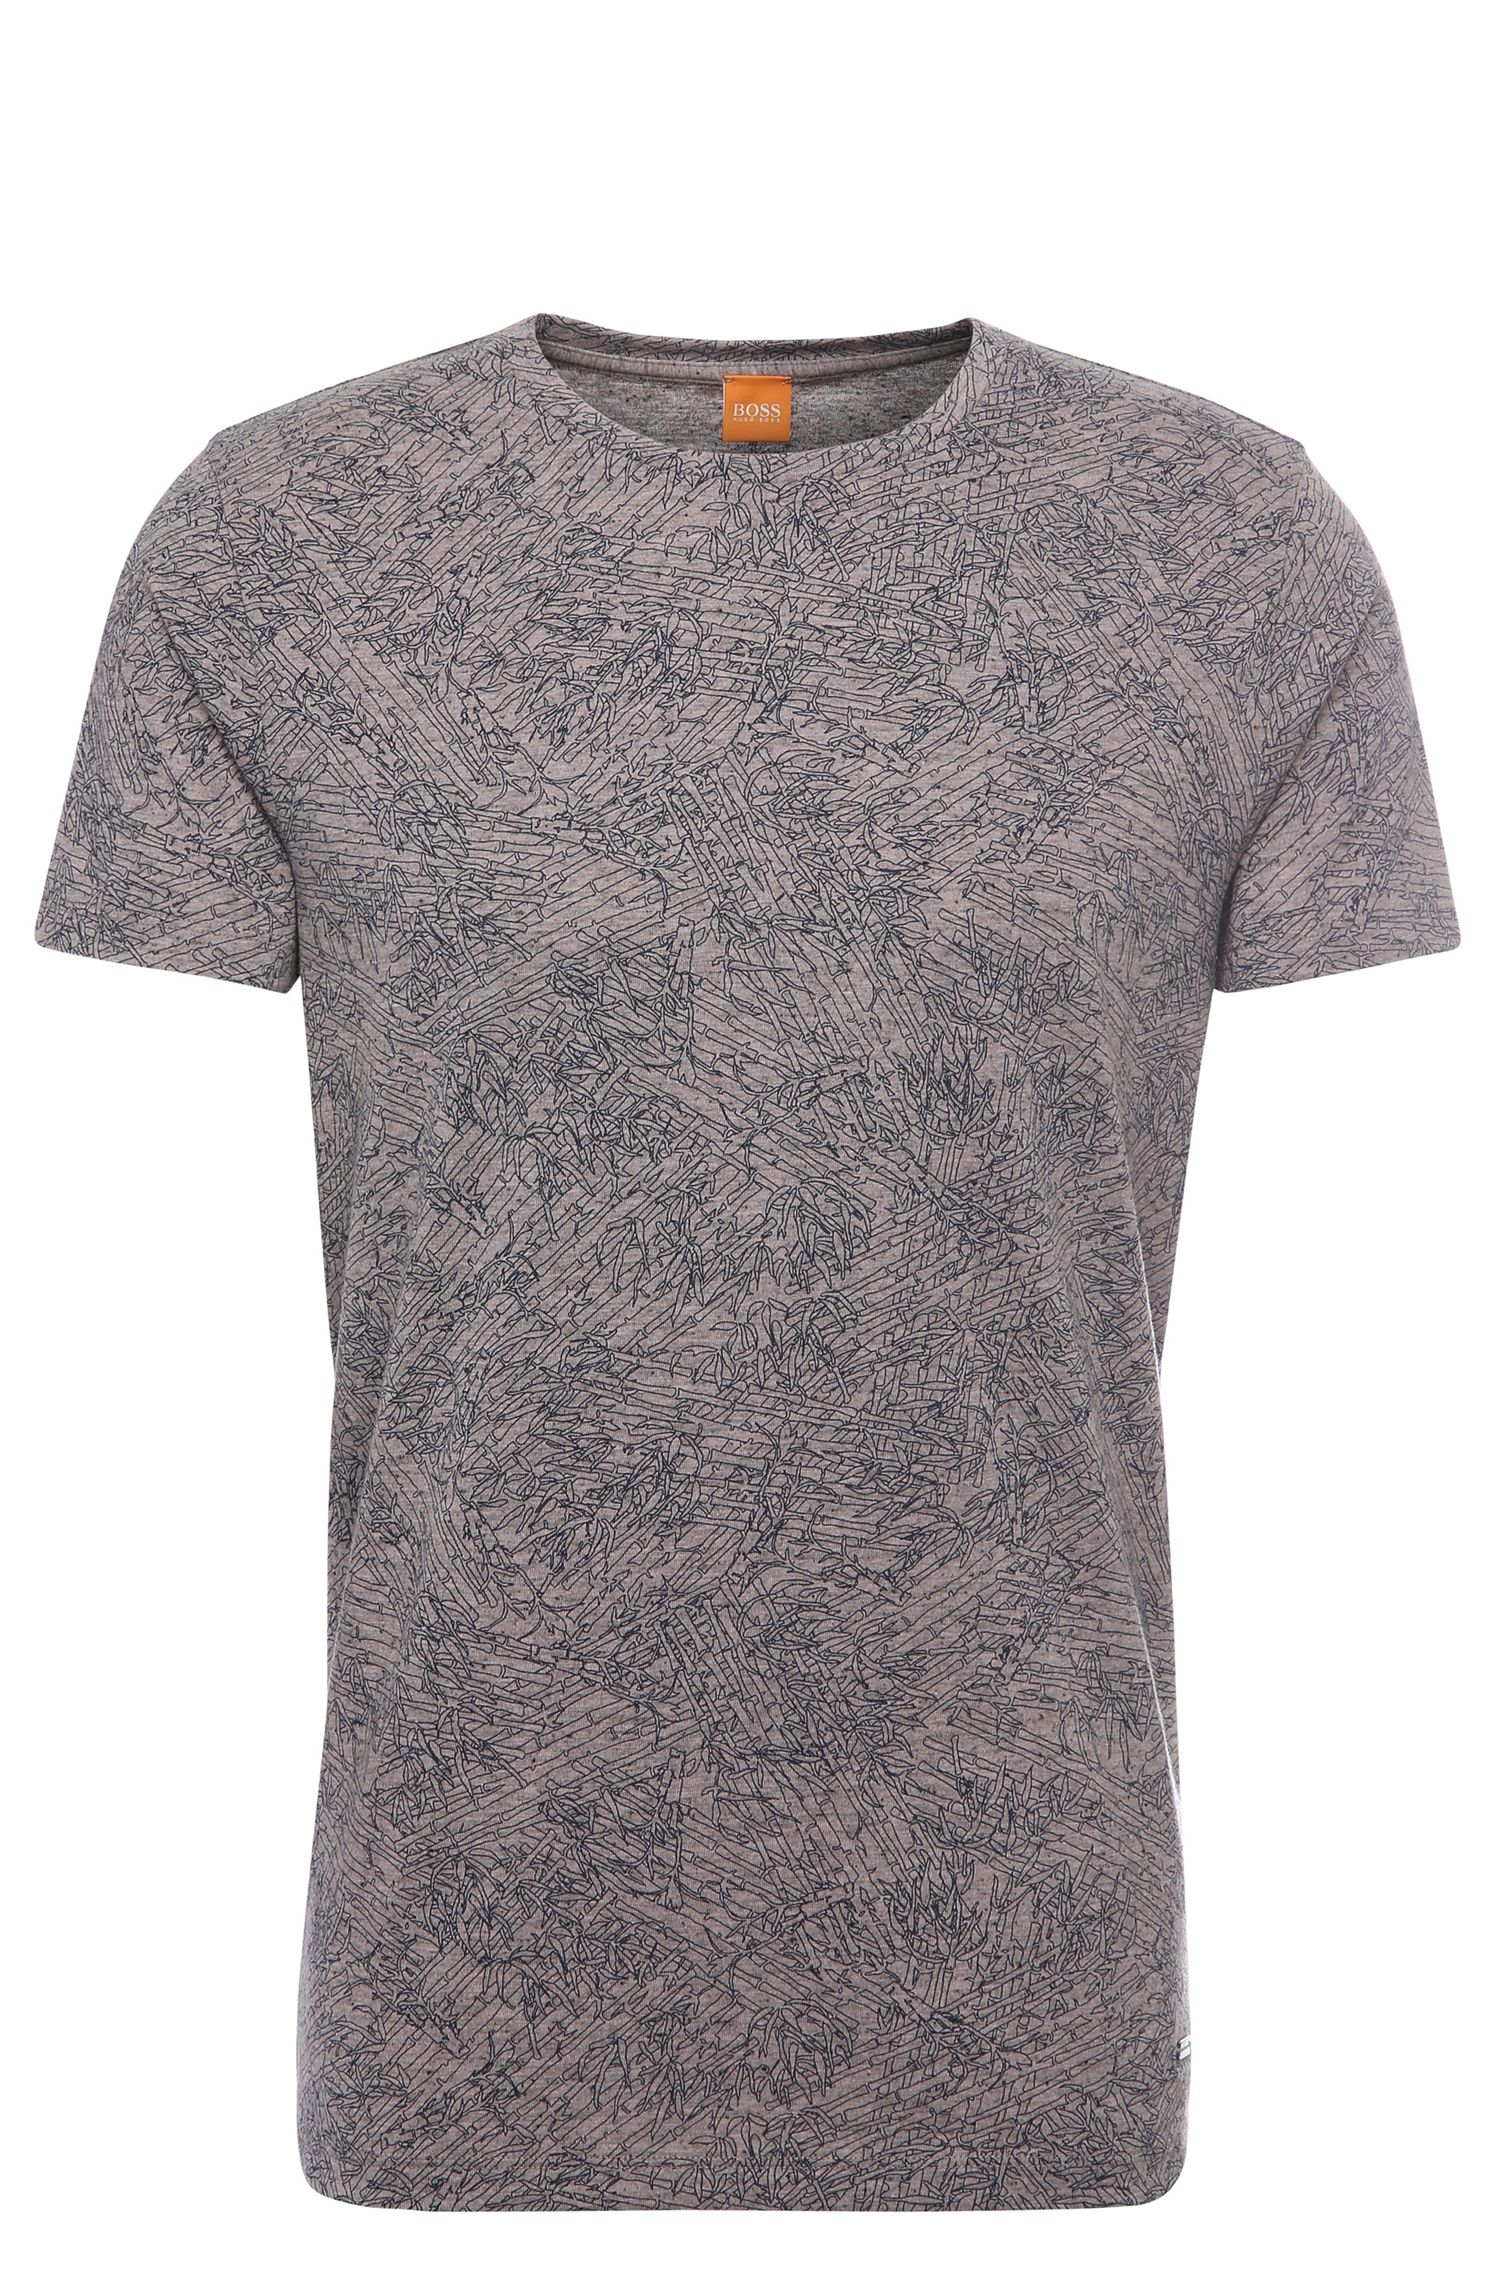 'Tauryon' | Cotton Modal Blend Printed T-Shirt